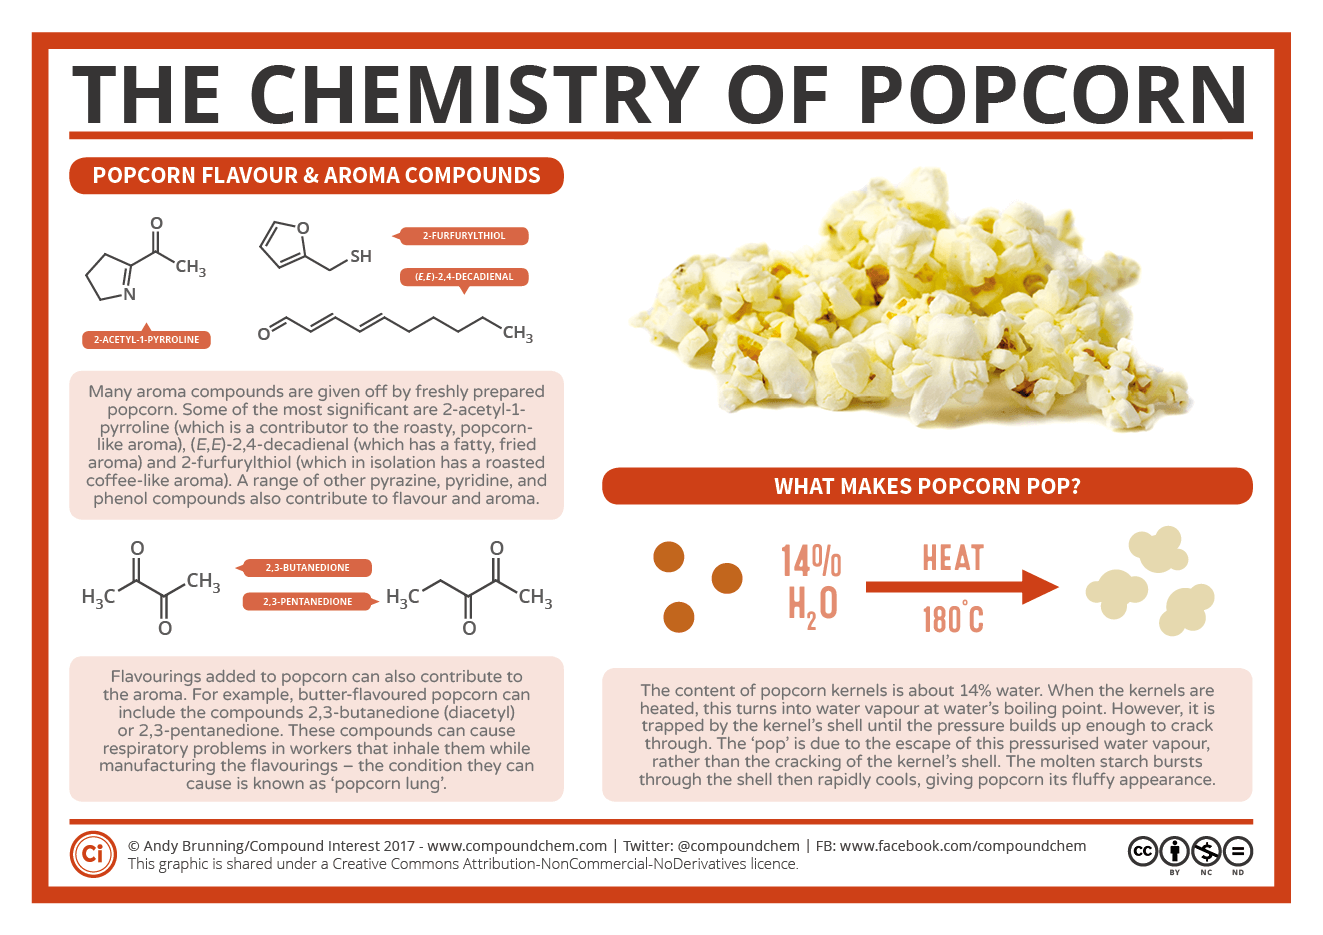 What Makes Popcorn Pop